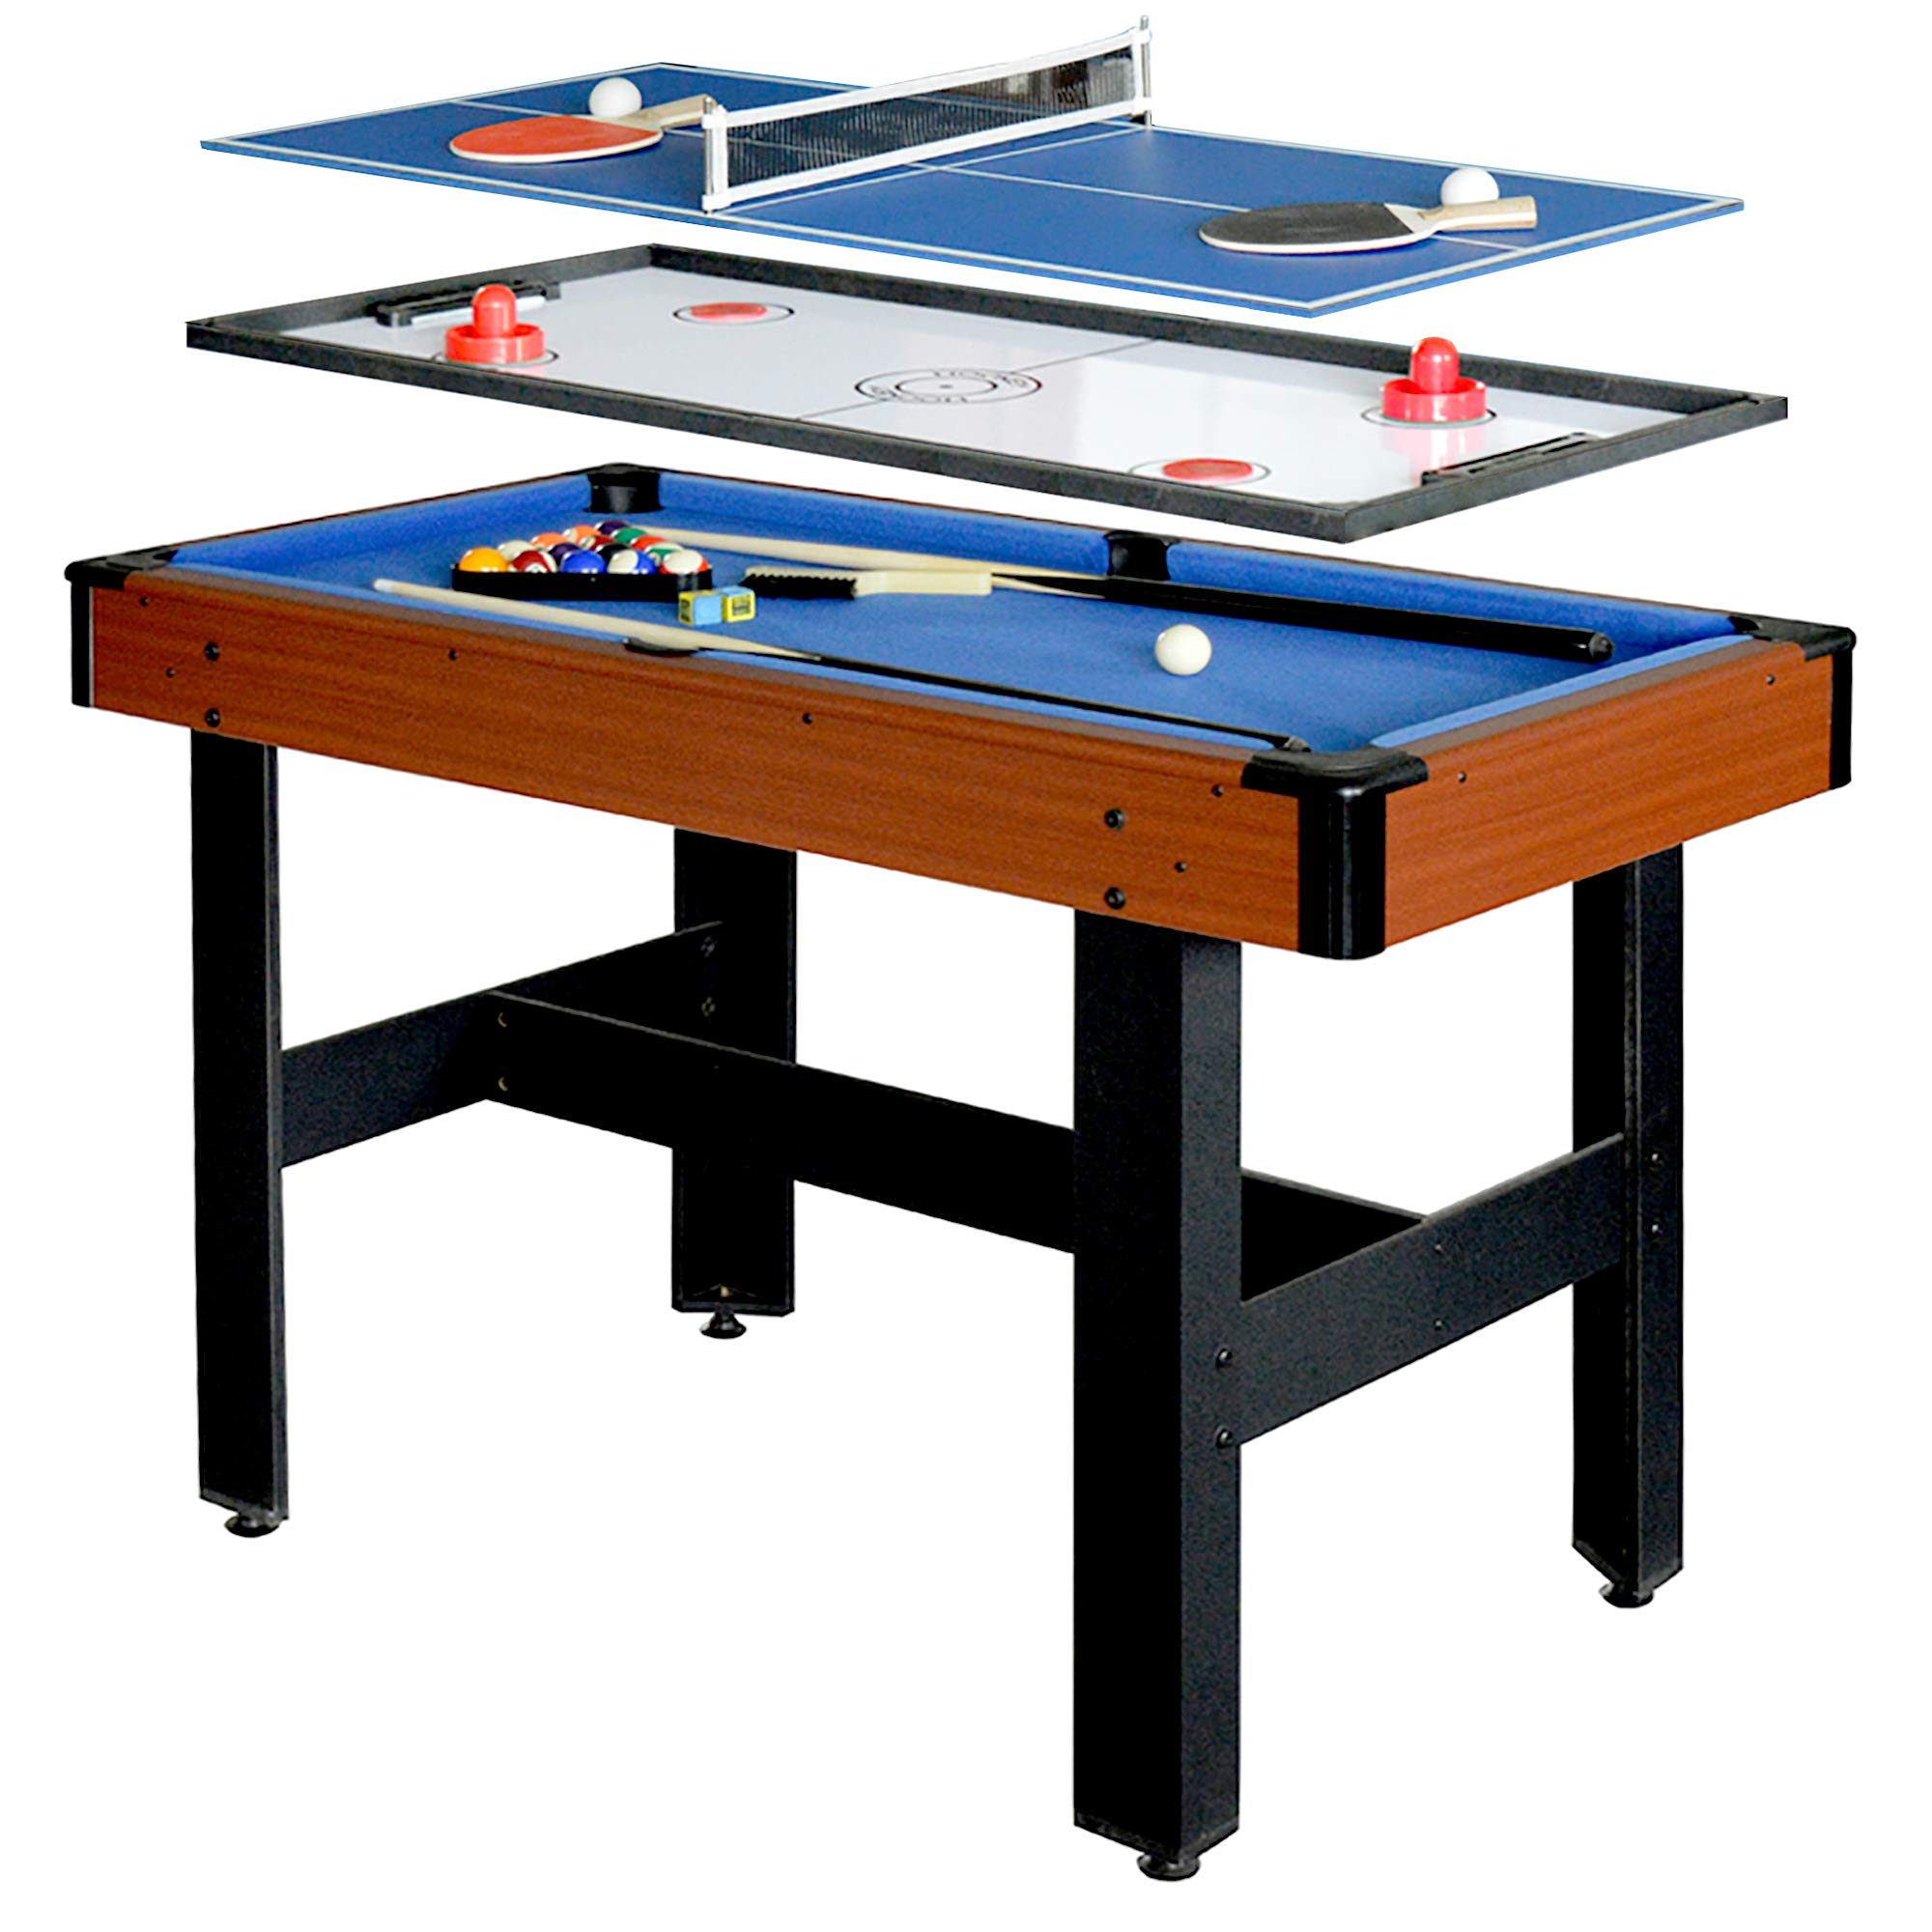 Hathaway BG1131M Triad 3-in-1 48-in Multi Game Table with Pool, Glide Hockey, and Table Tennis for Family Game Rooms by Hathaway